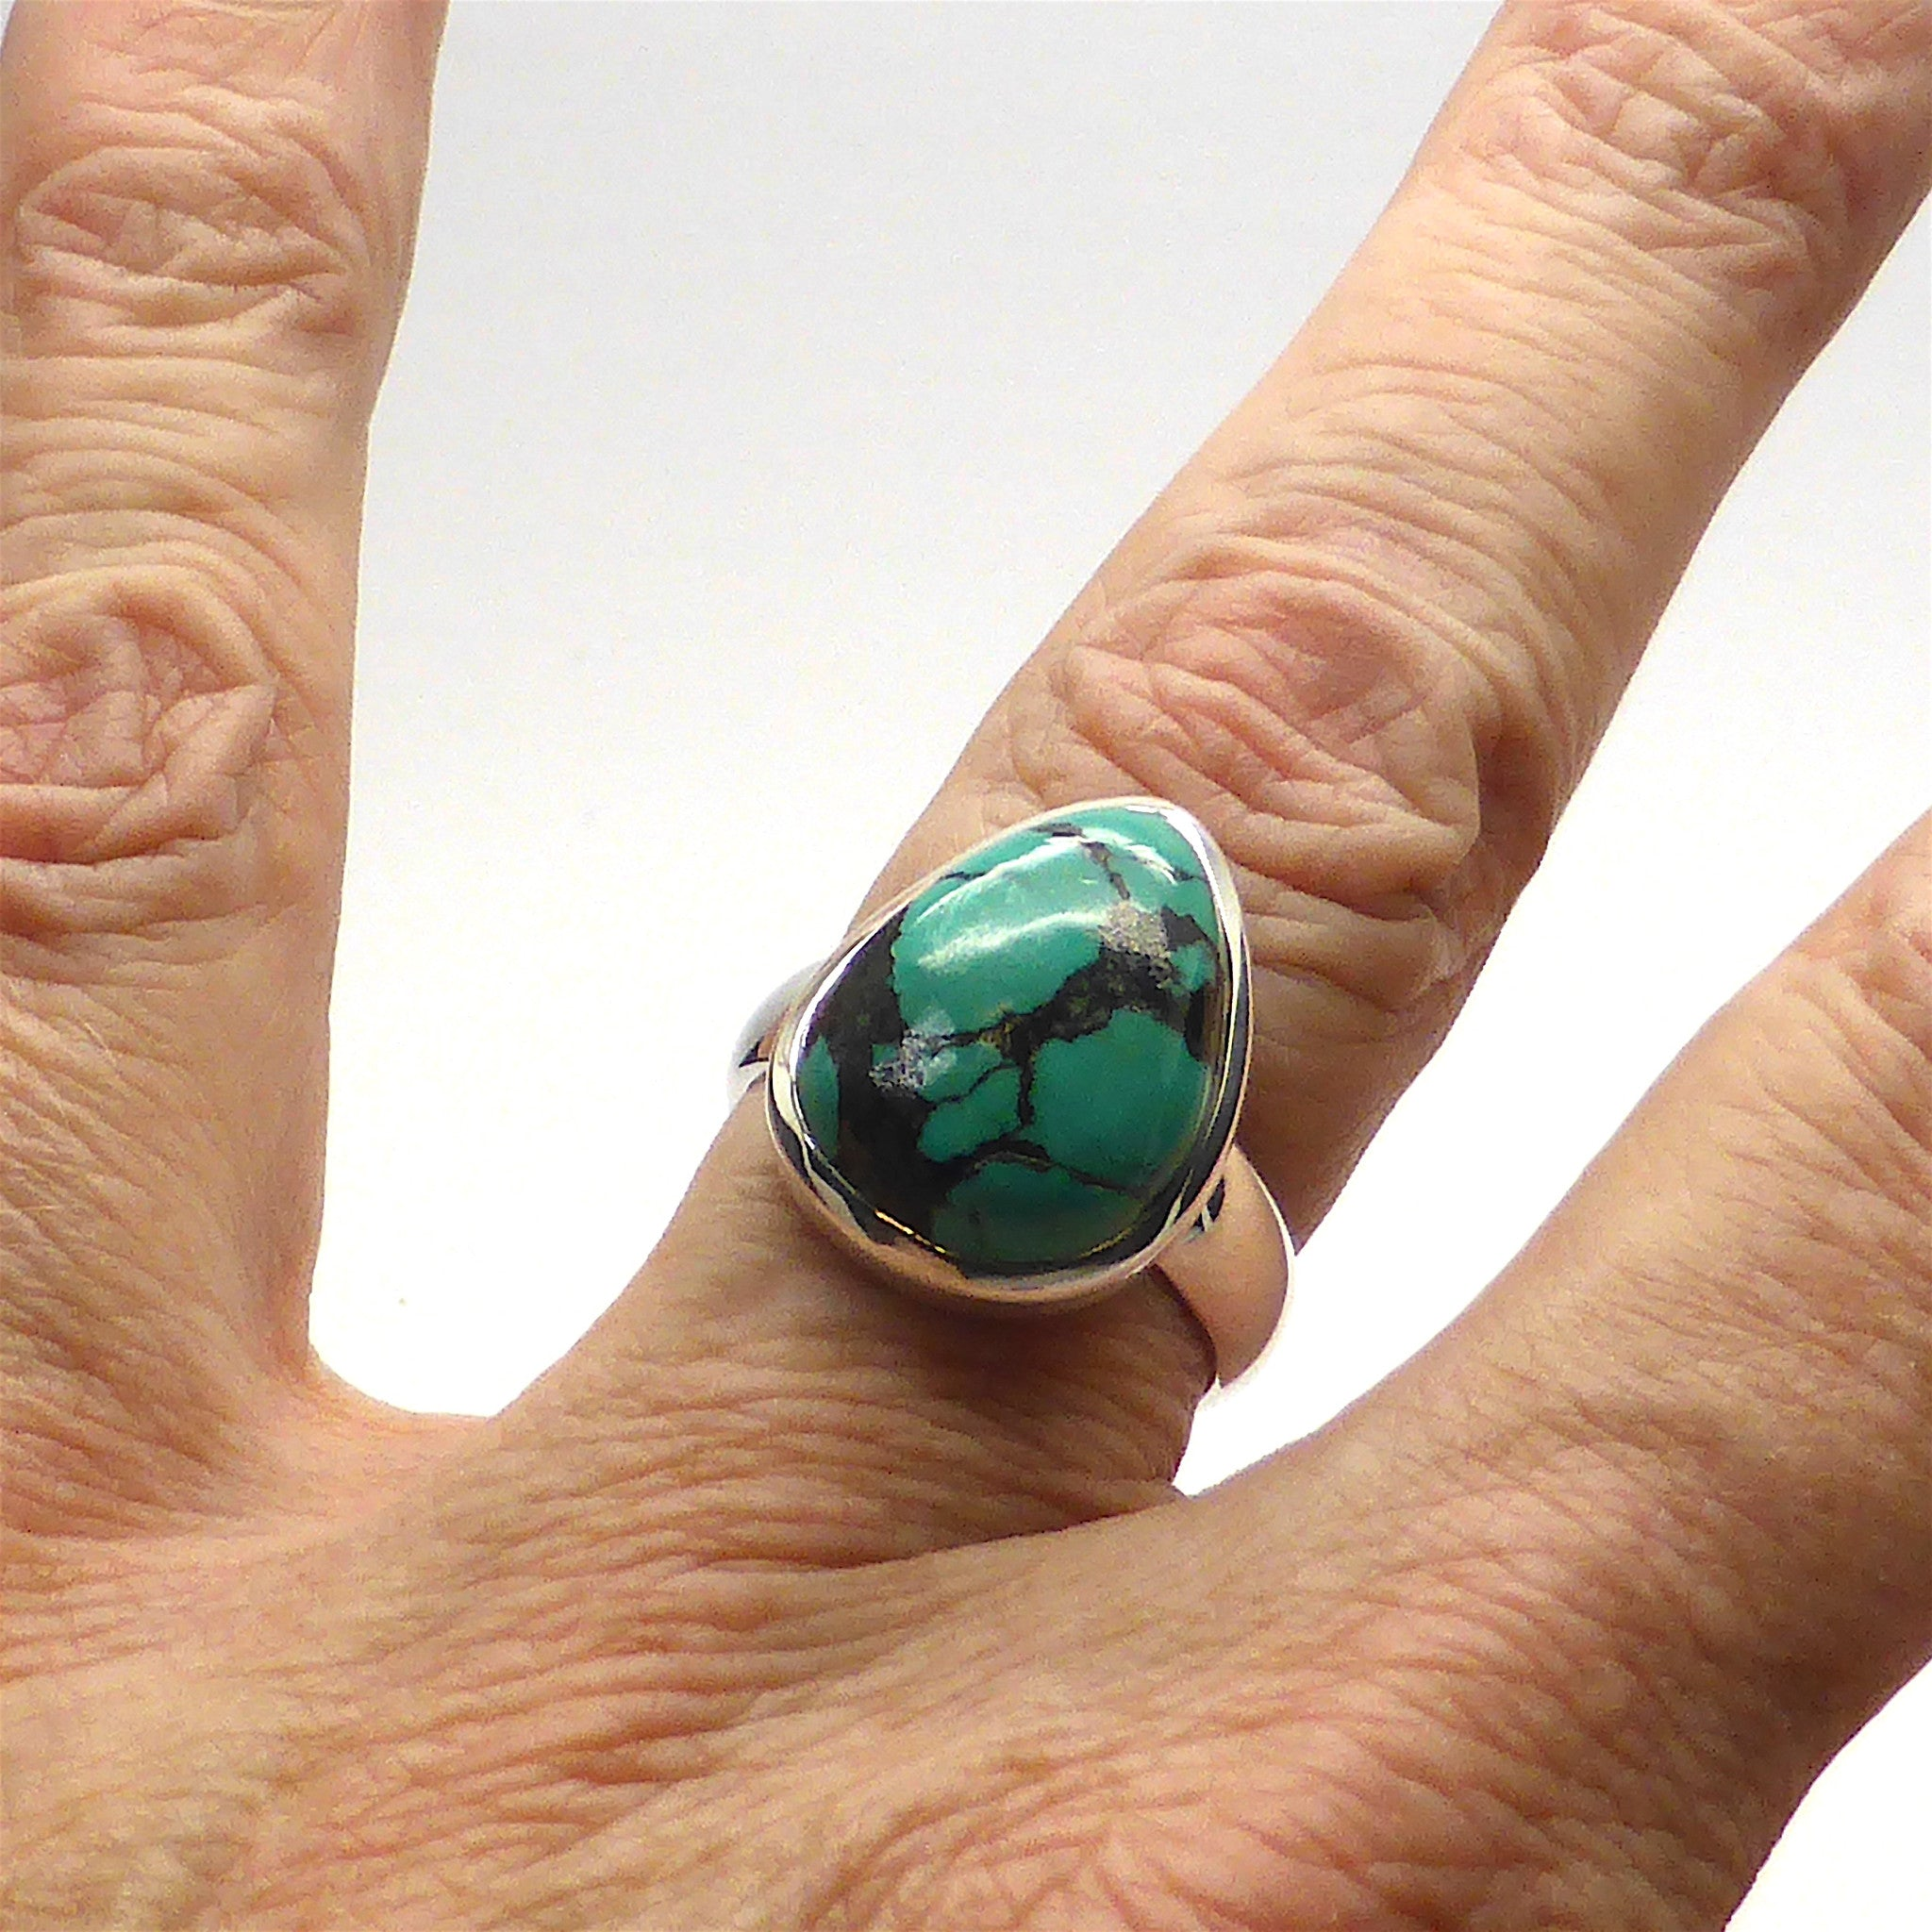 Ring Tibetan Turquoise Tear | 925 Sterling Silver | US Size 9 | Crystal Heart Melbourne Australia since 1986